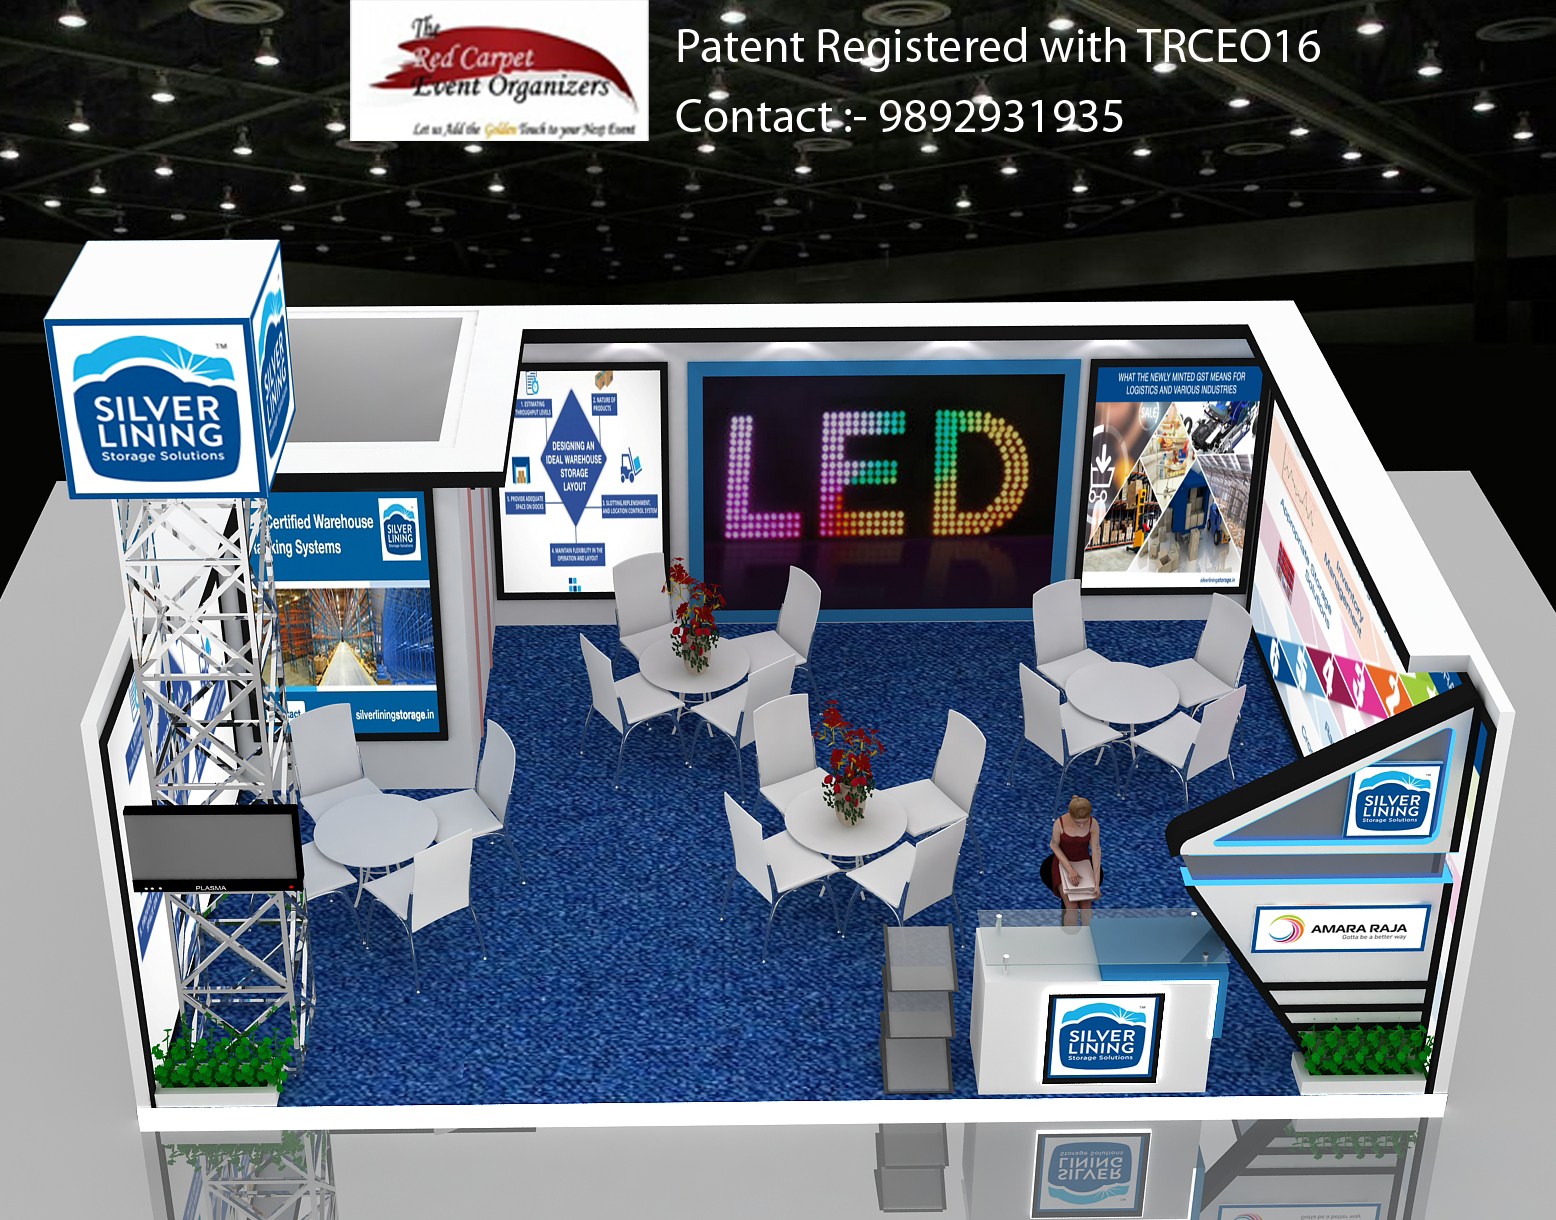 2_Stall designs bird eye view Exhibition Stall Design & Fabrication by The Red Carpet Event Organize